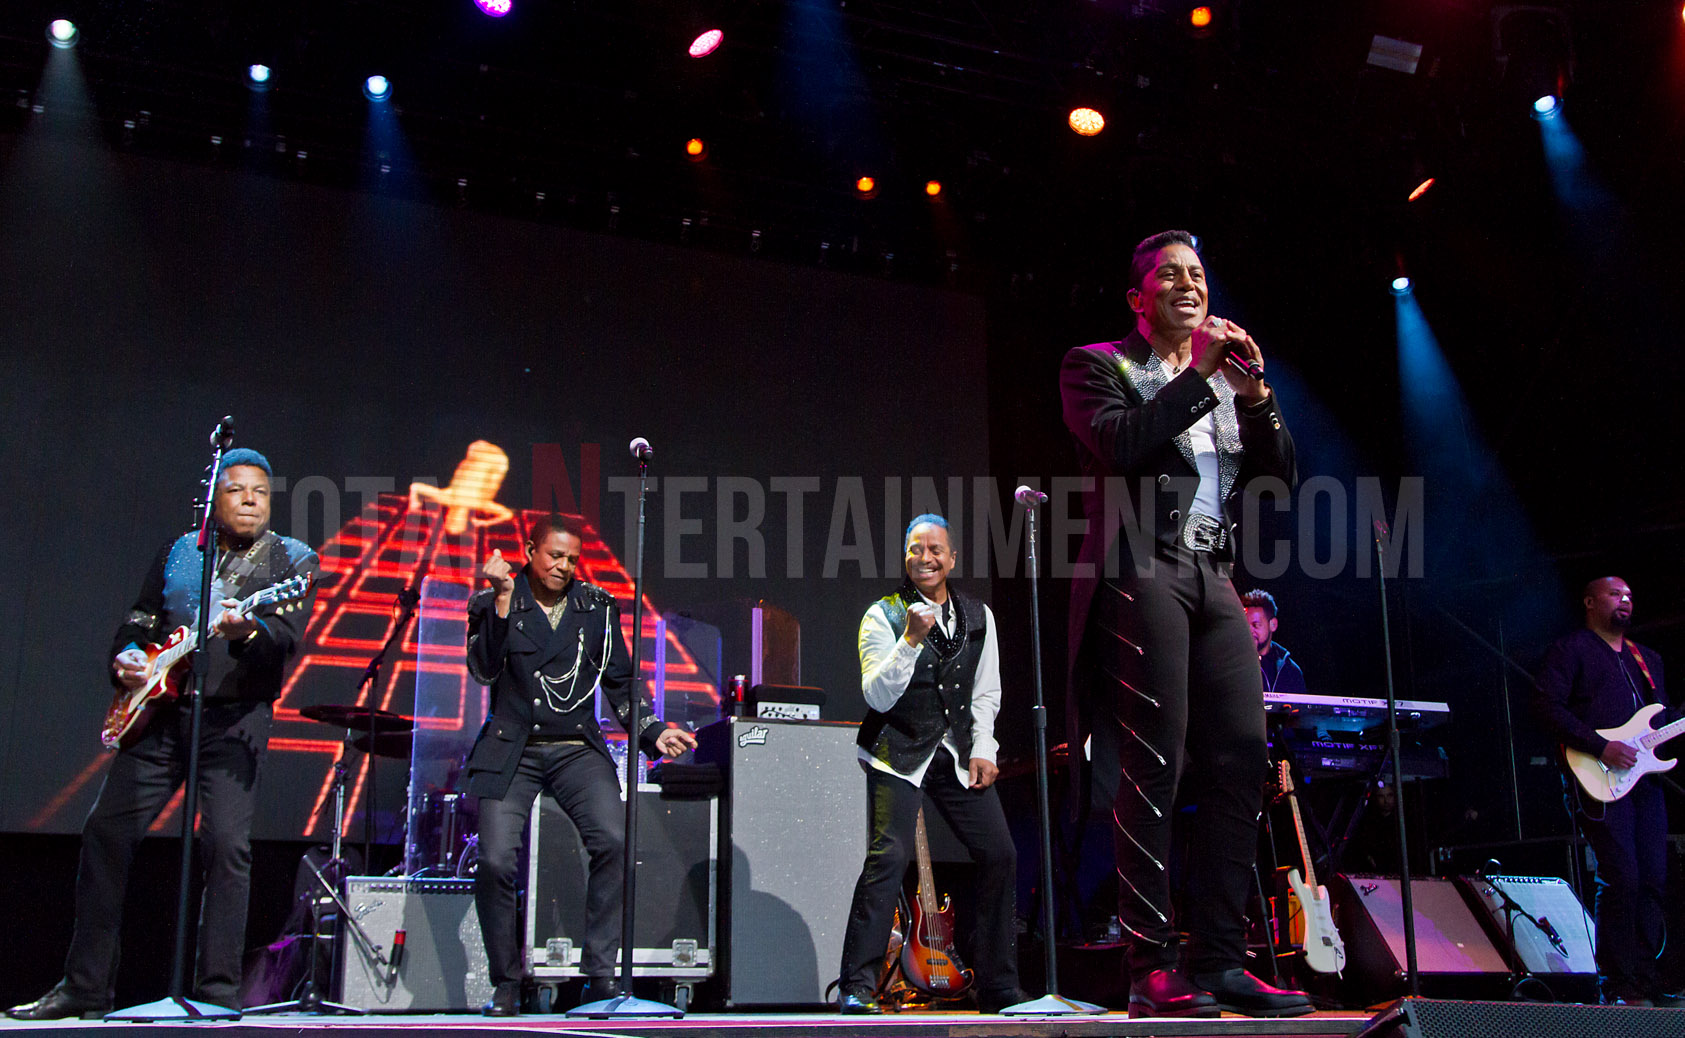 The Jacksons, Haydock, Concert, Live Event